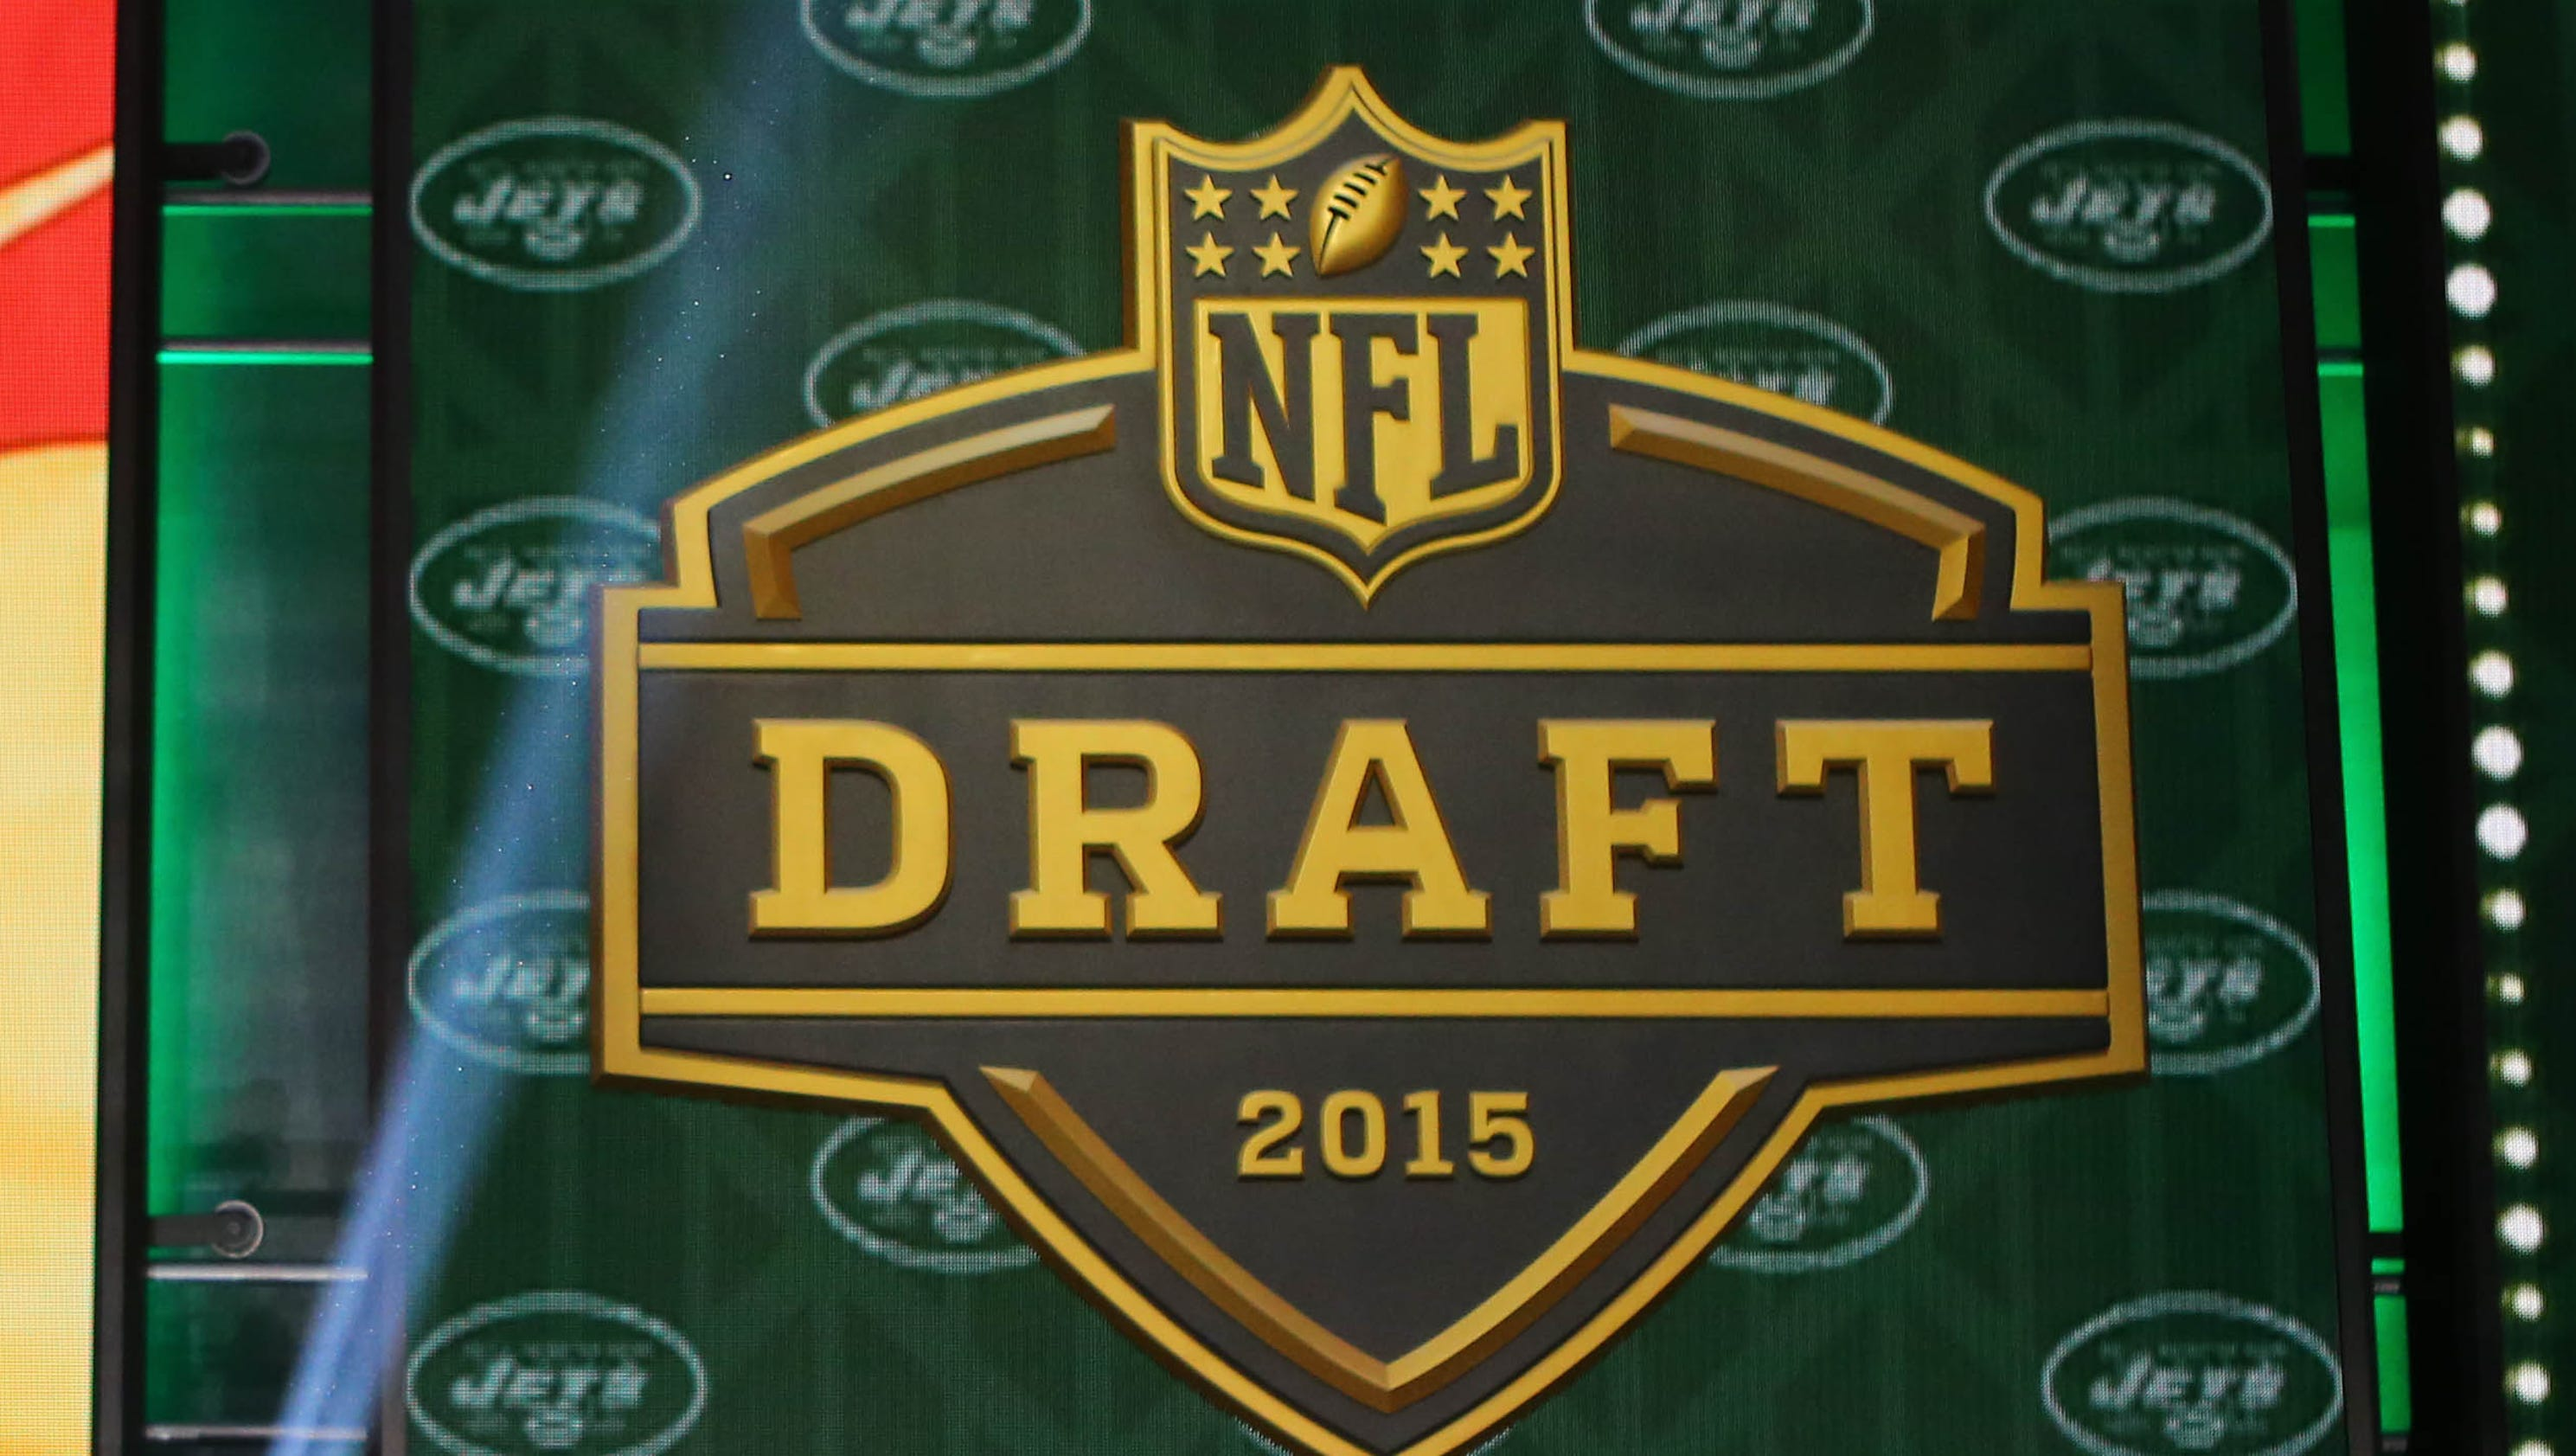 NFL draft 2015 guide: Day 3 info, TV schedule